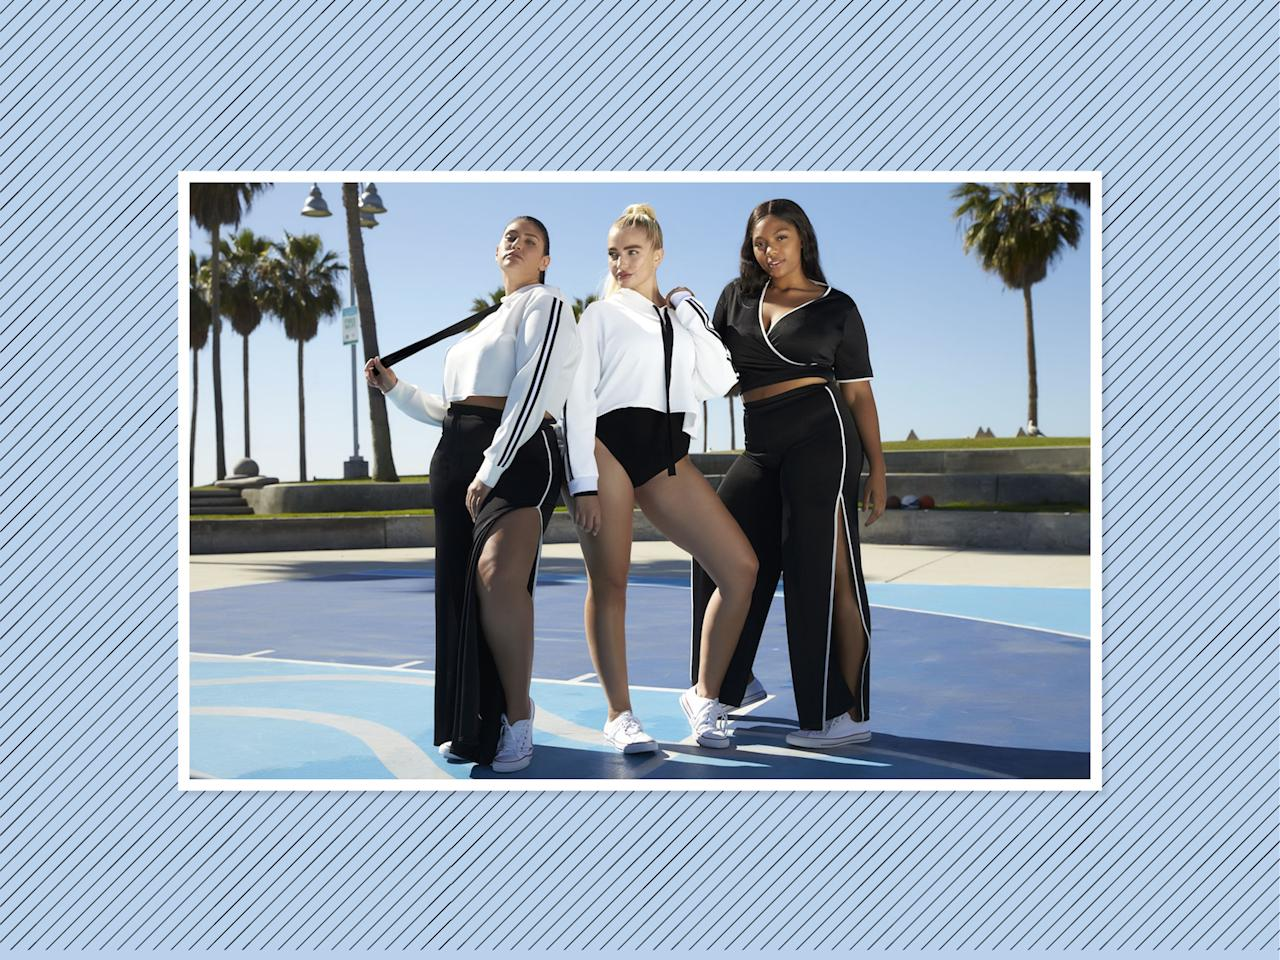 <p>Simply Be's relaunch includes looks priced below $100 and in an inclusive size range of 8 to 28. </p>